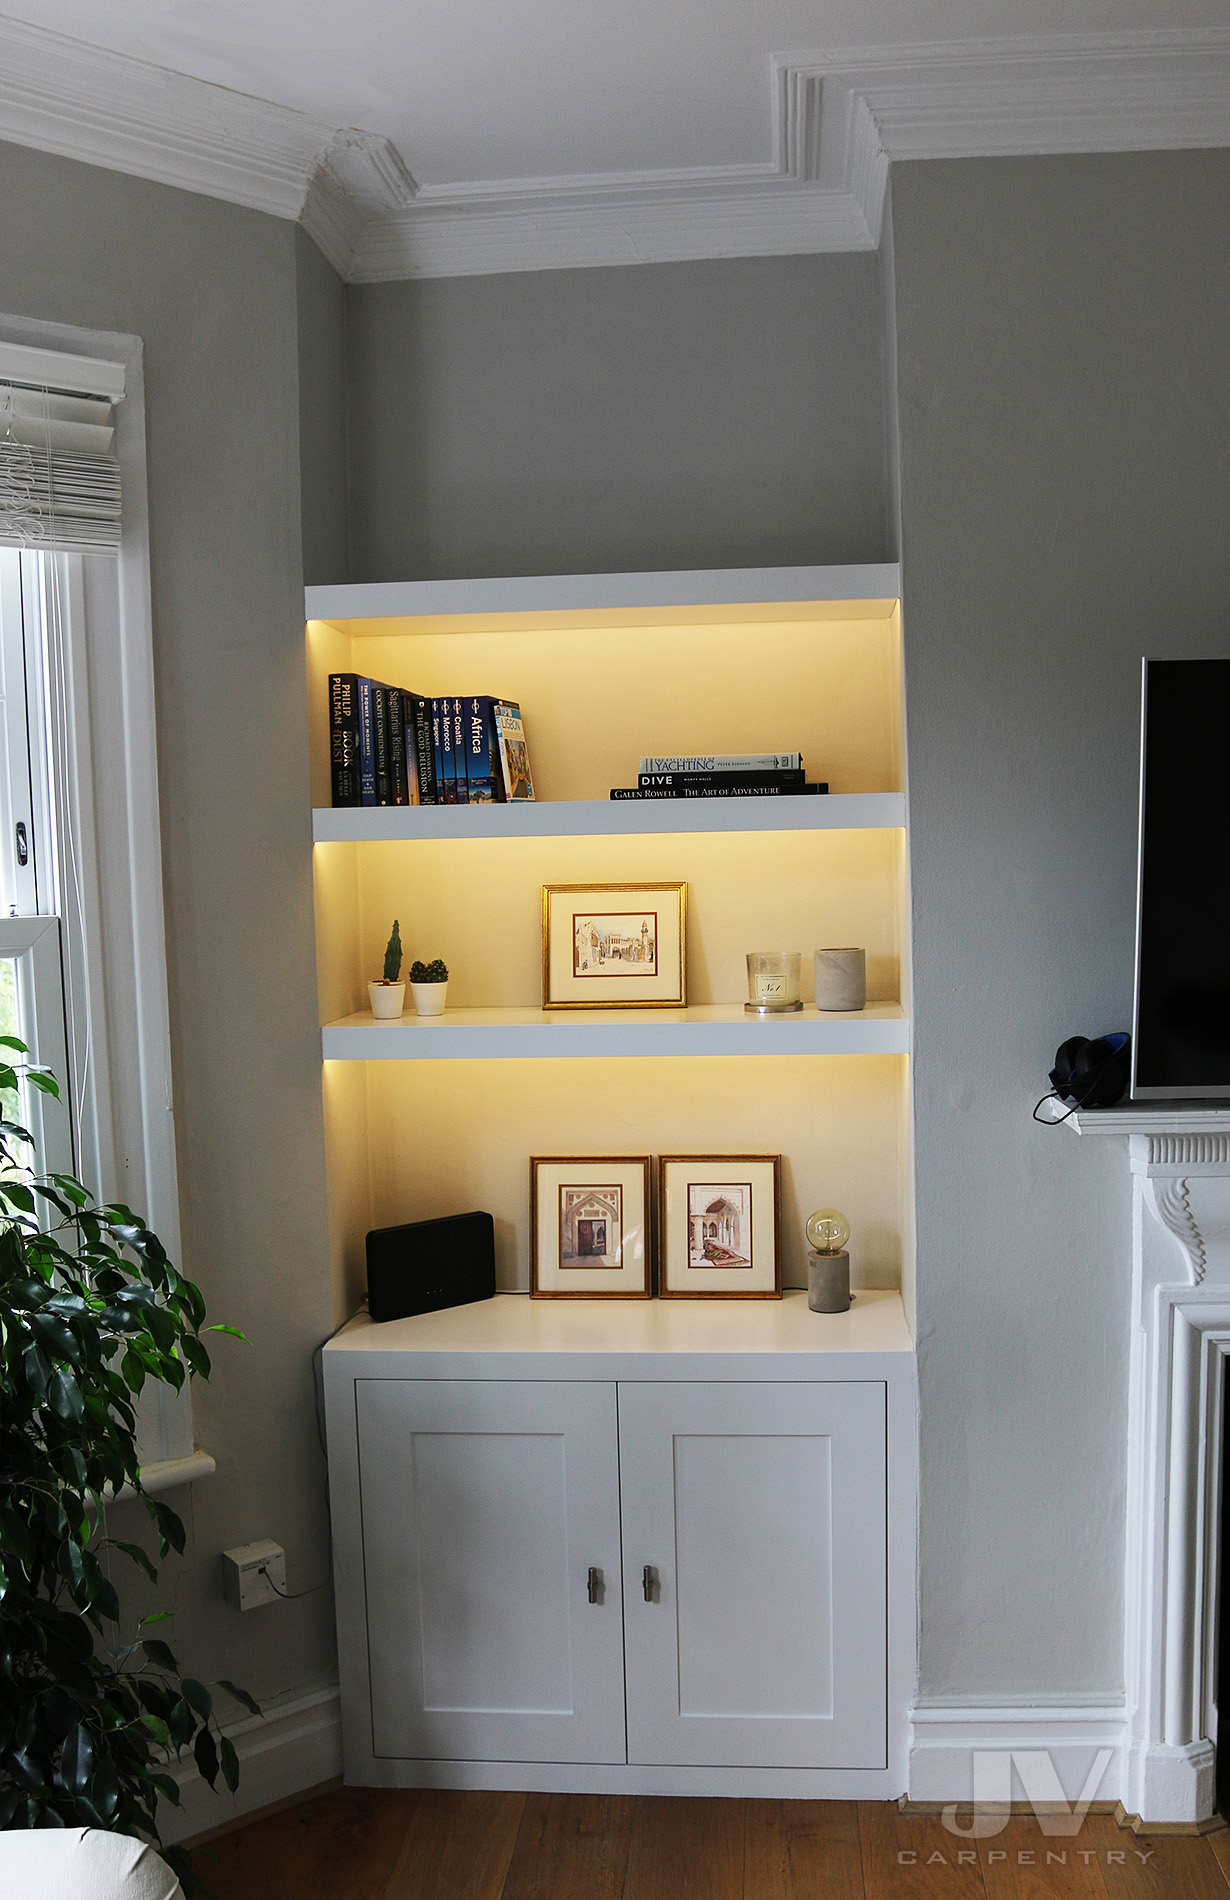 alcove shelves with lights and cabinets